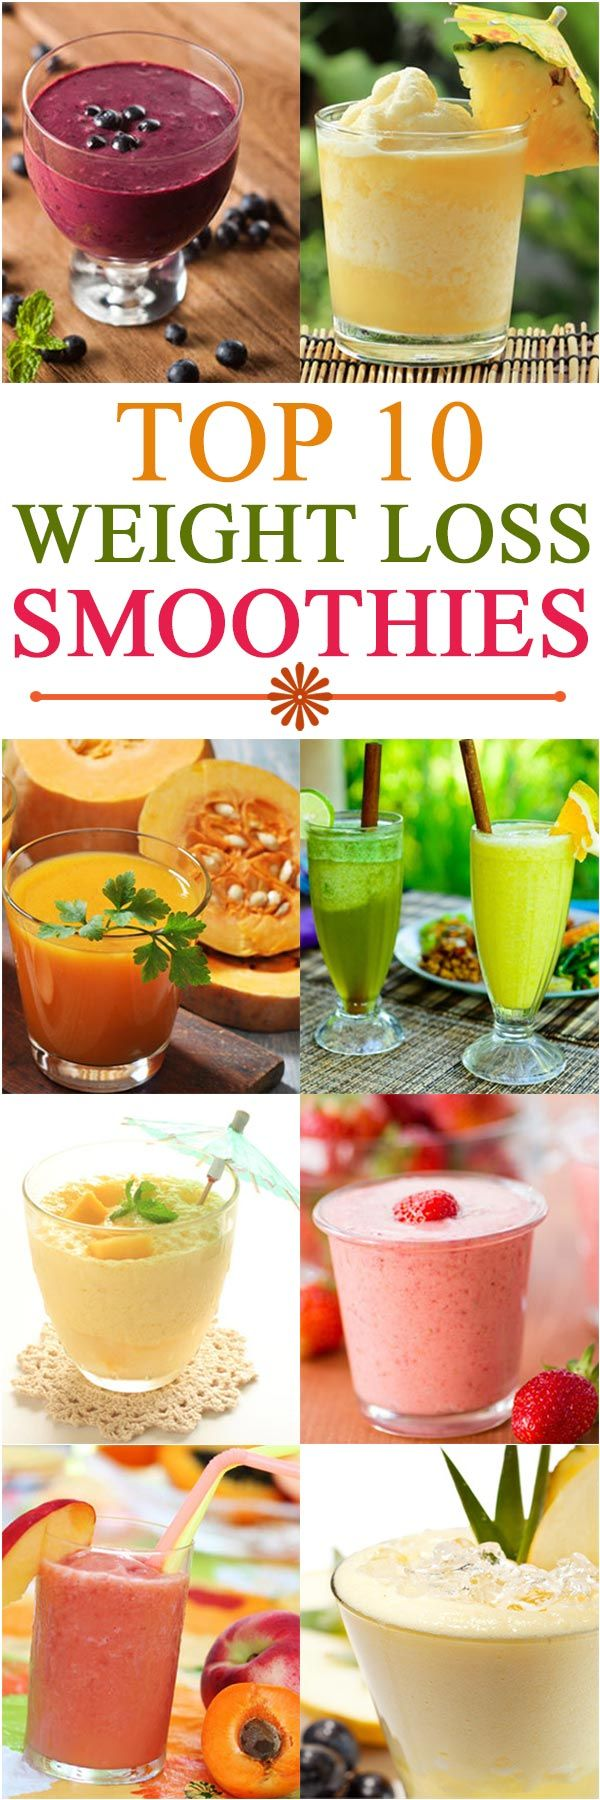 3 day weight loss smoothie